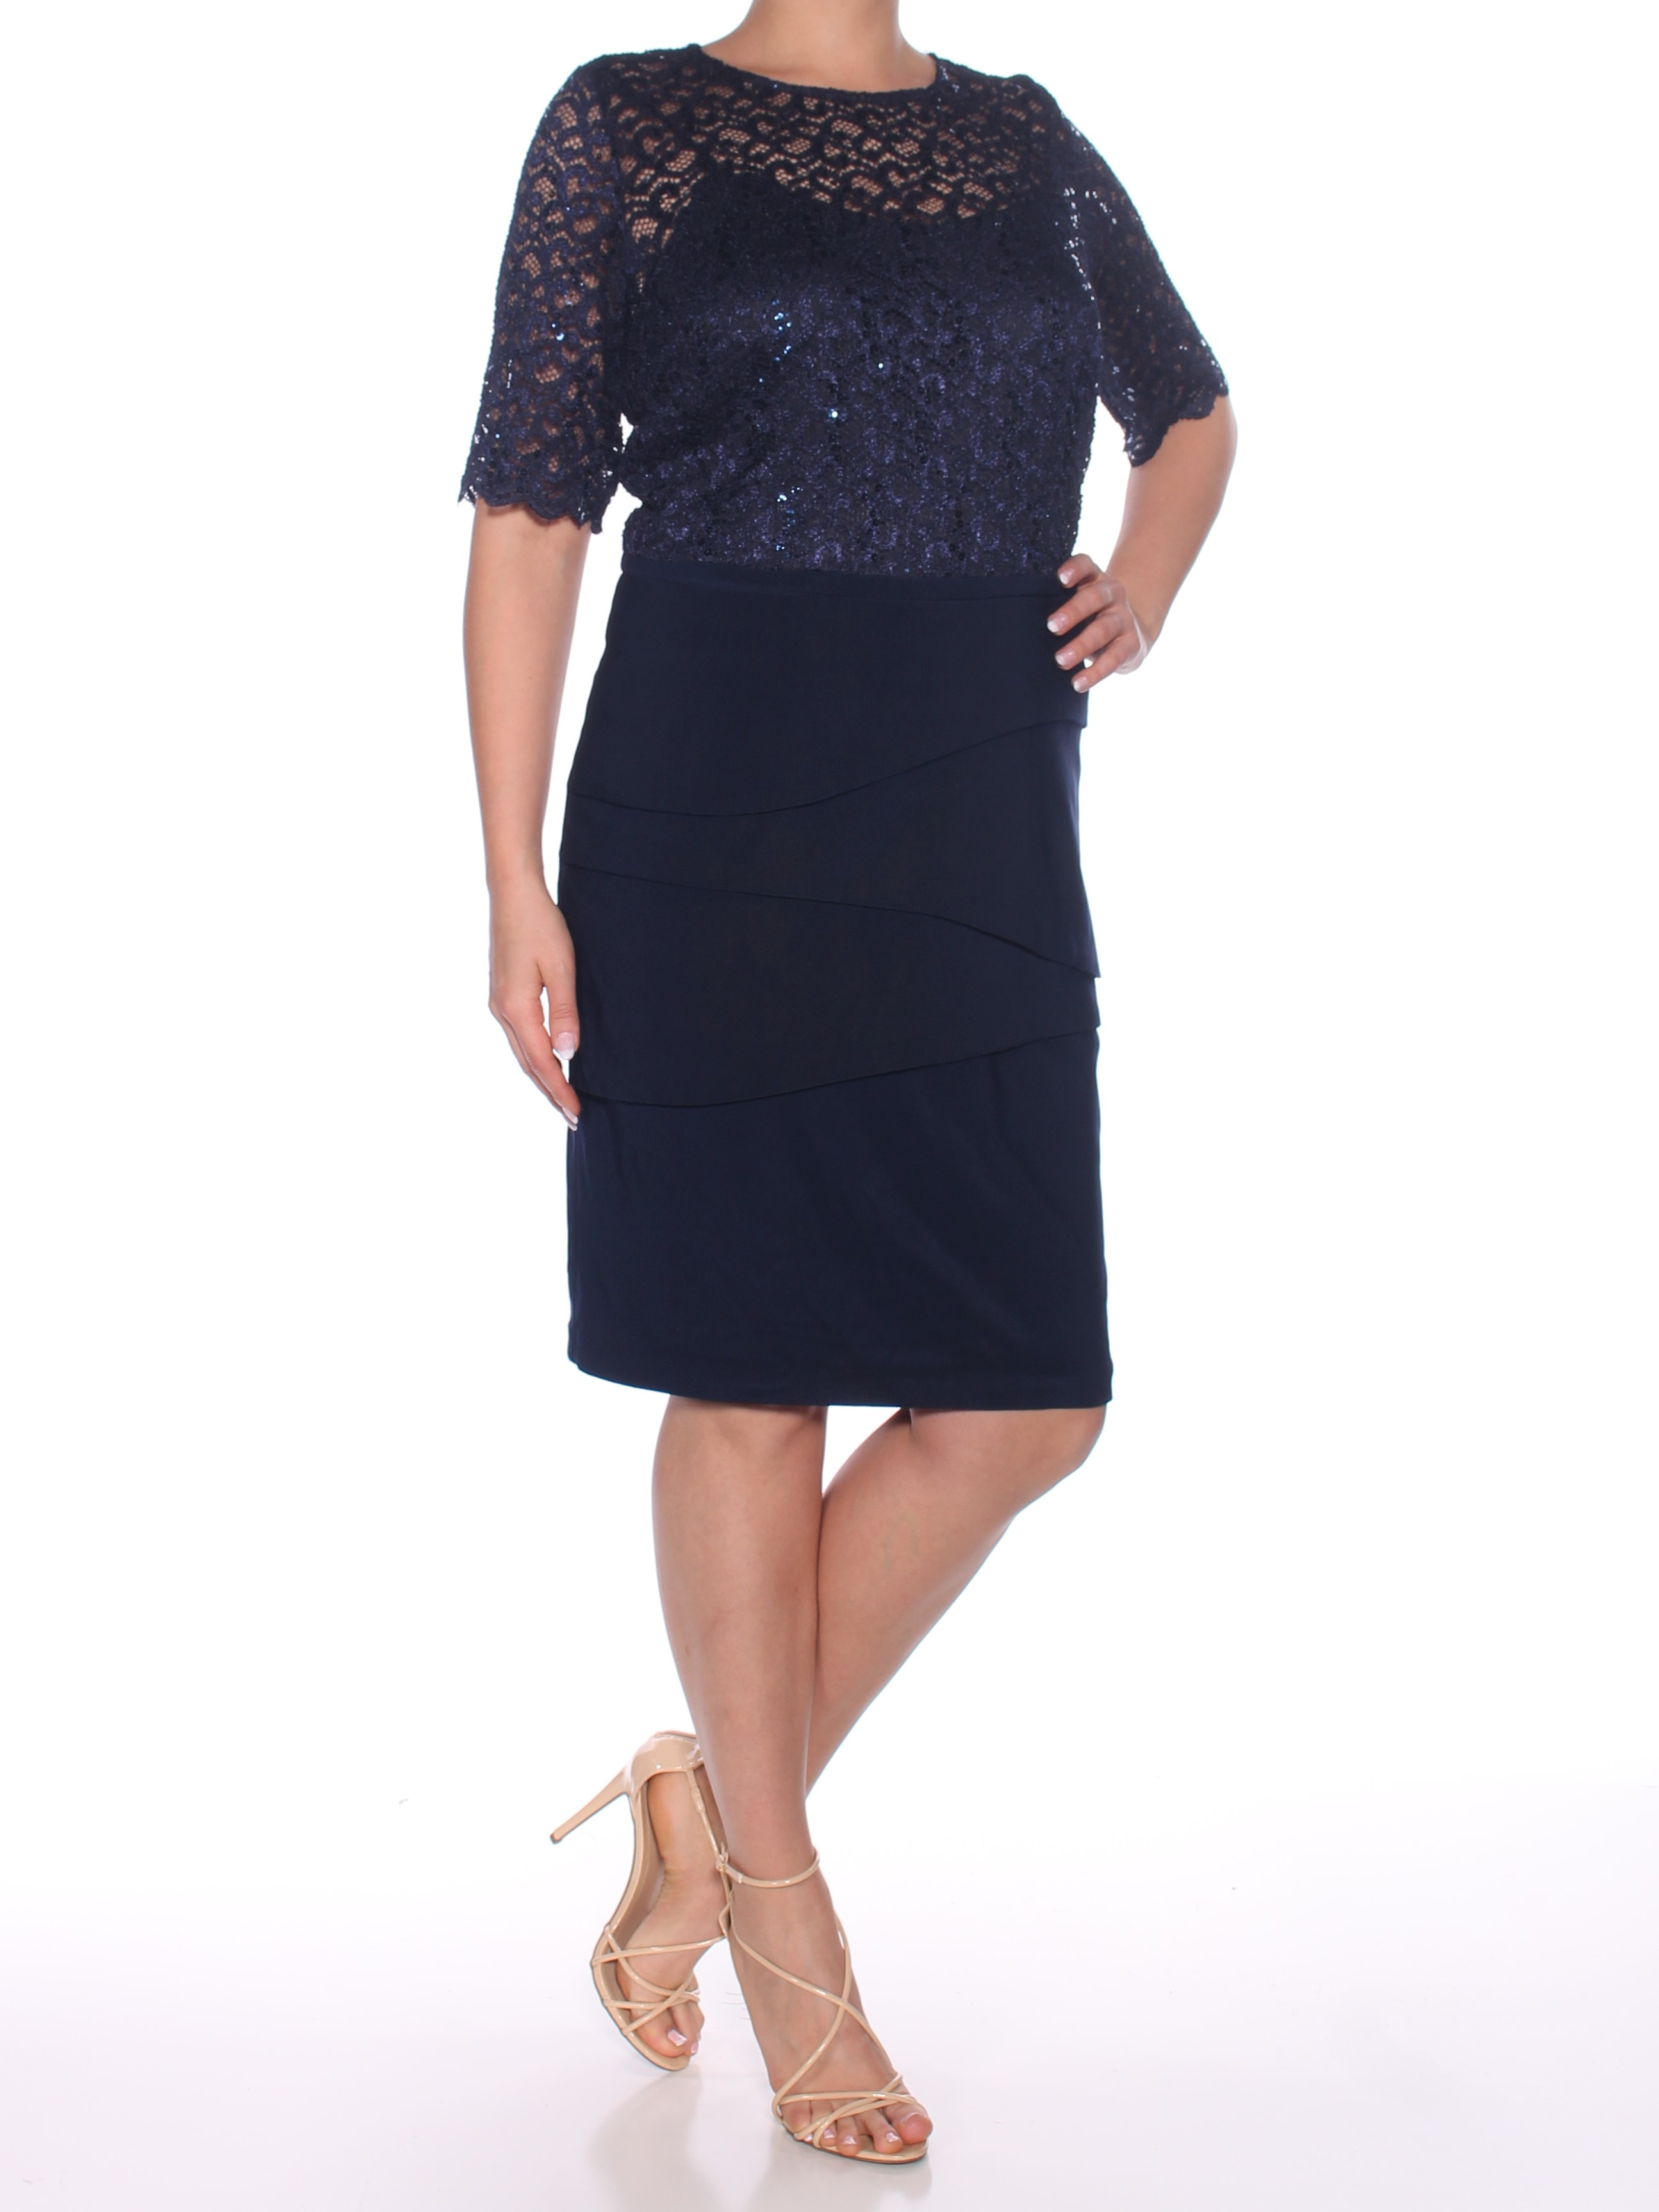 c86fc6e1d87 BETSY   ADAM  239 Womens New 0246 Navy Embellished Layered Dress 14 ...